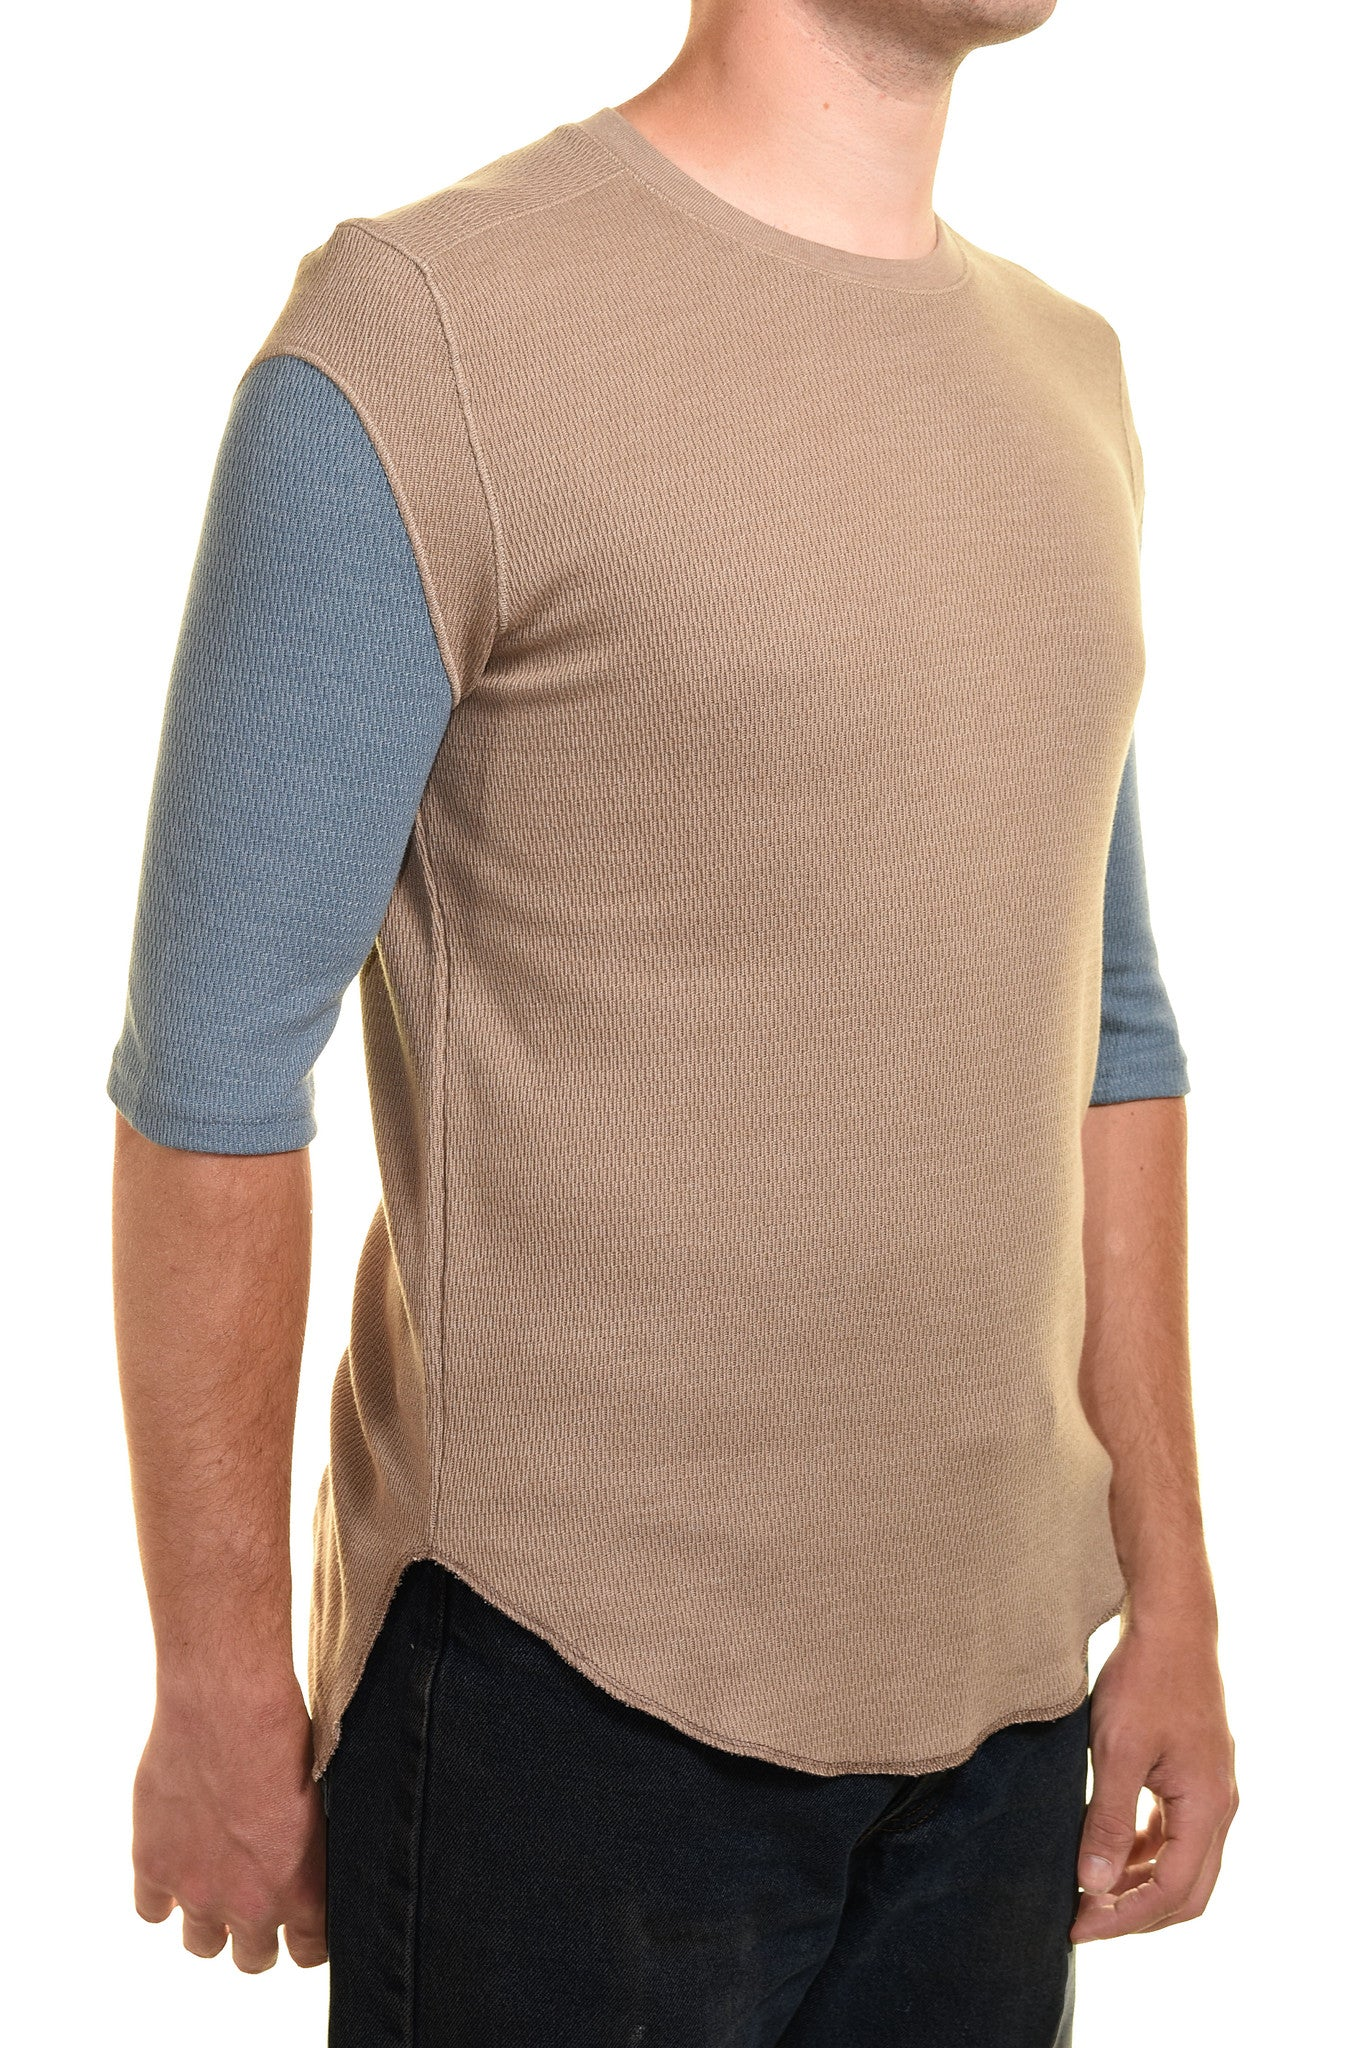 Koto Mens Thermal Tee Half Sleeve Shirt | Blue Brown